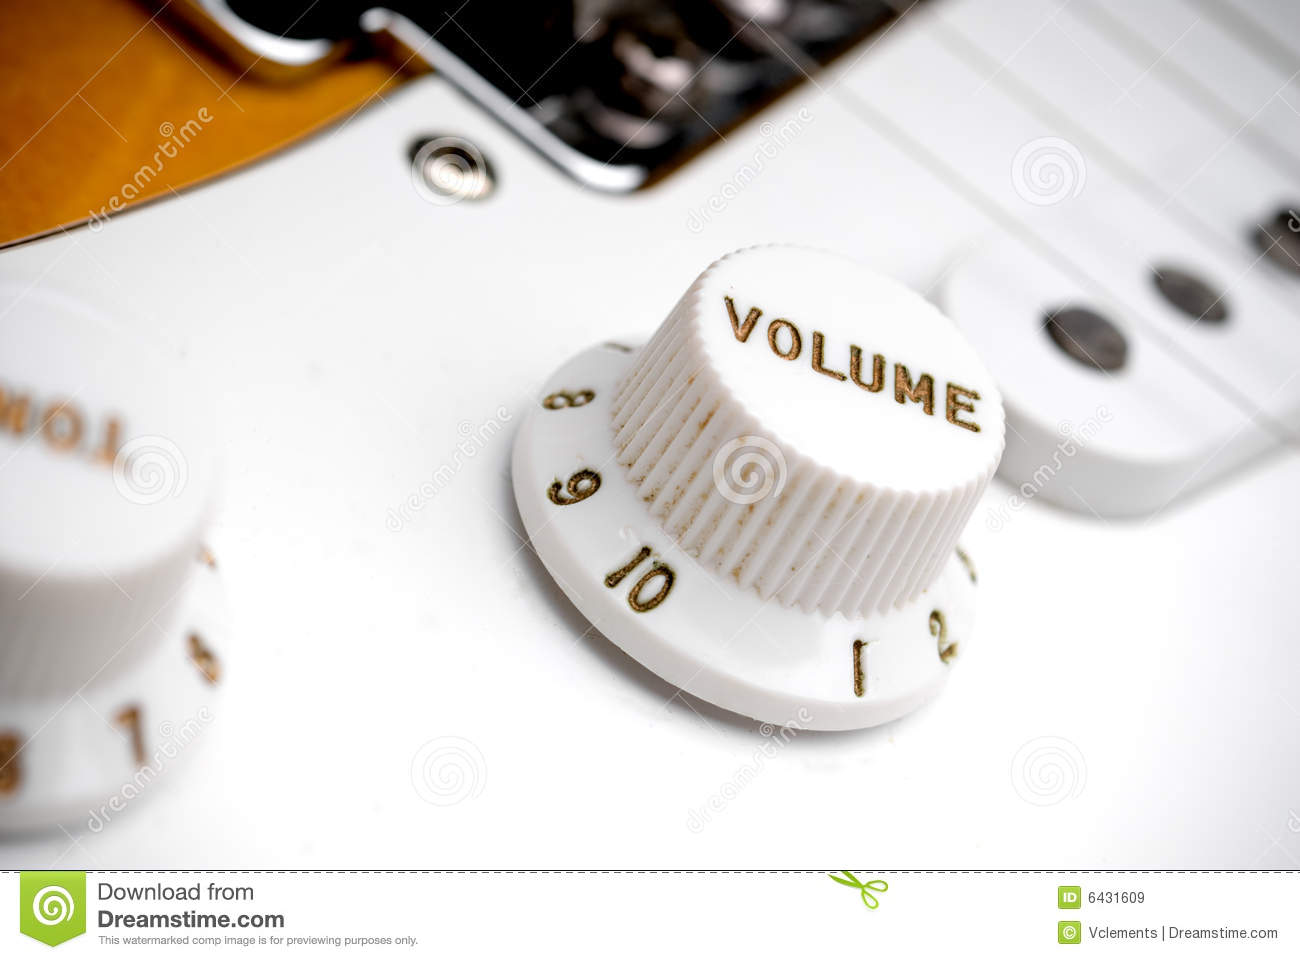 Guitar Volume Control Royalty Free Stock Images - Image: 6431609